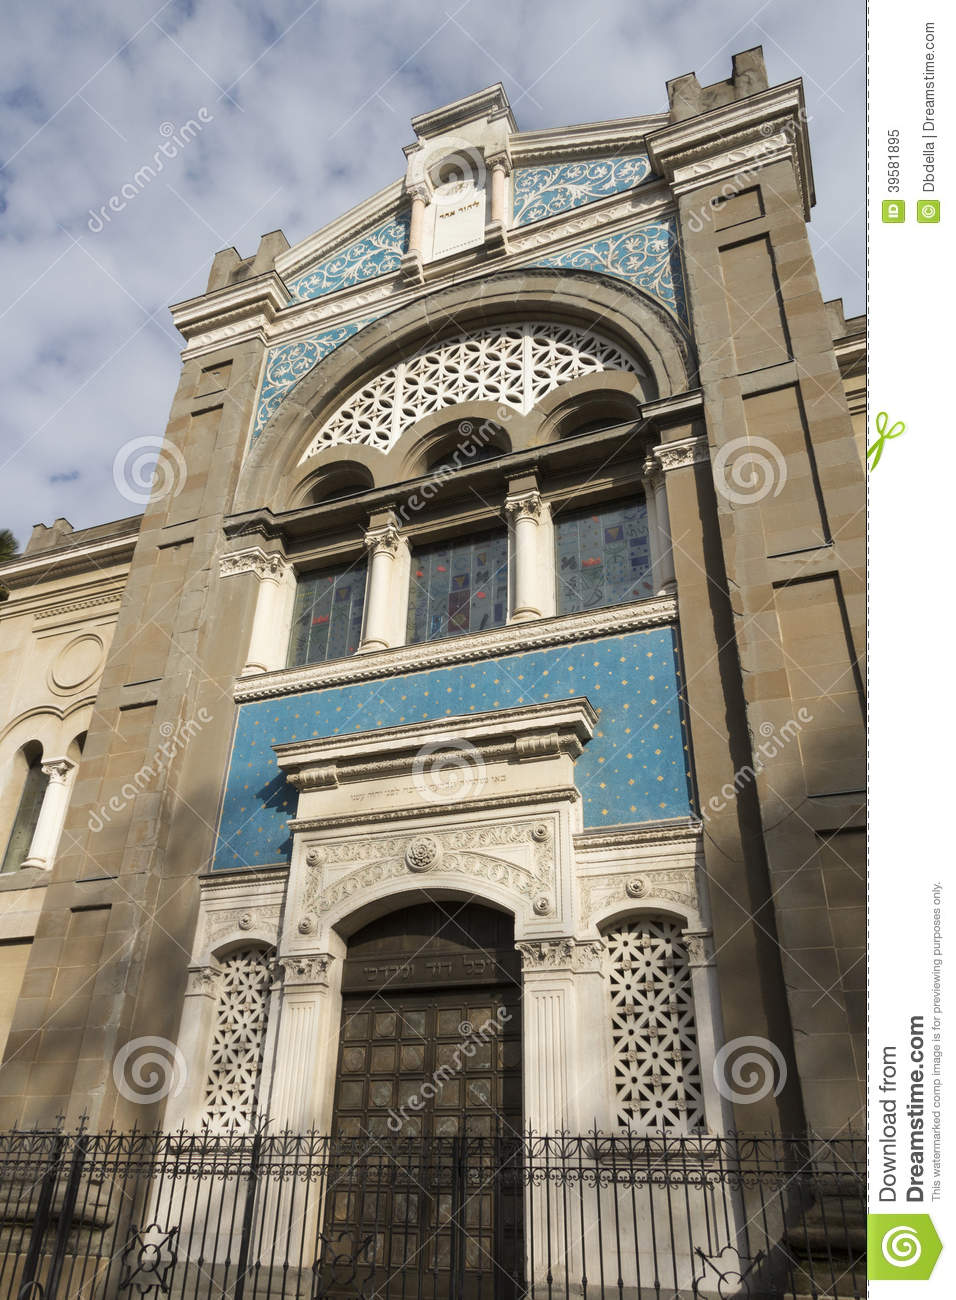 sinagoga lombardy italy - photo#1